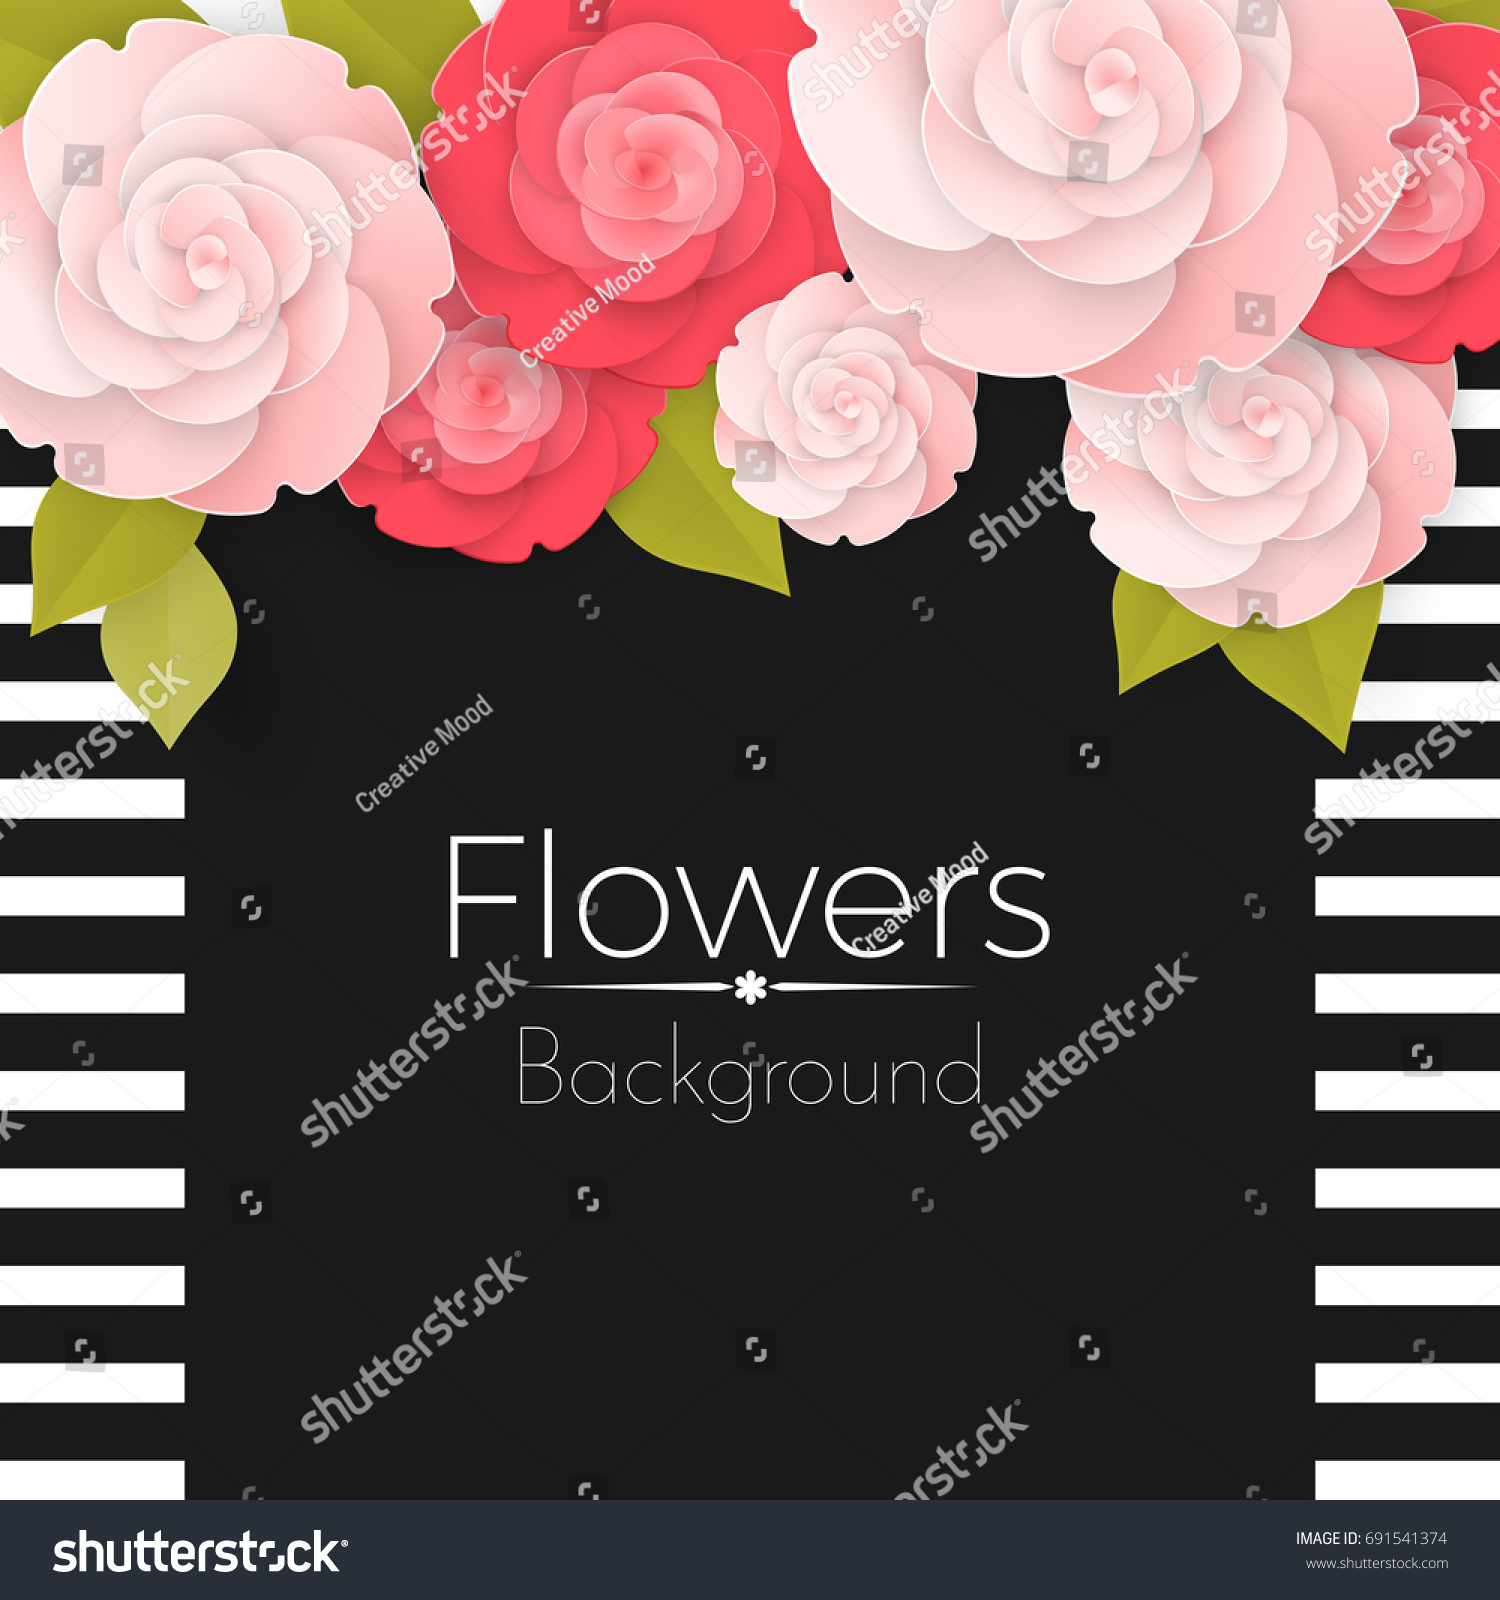 Paper Flowers Background Stripped Frame Black Stock Vector Royalty